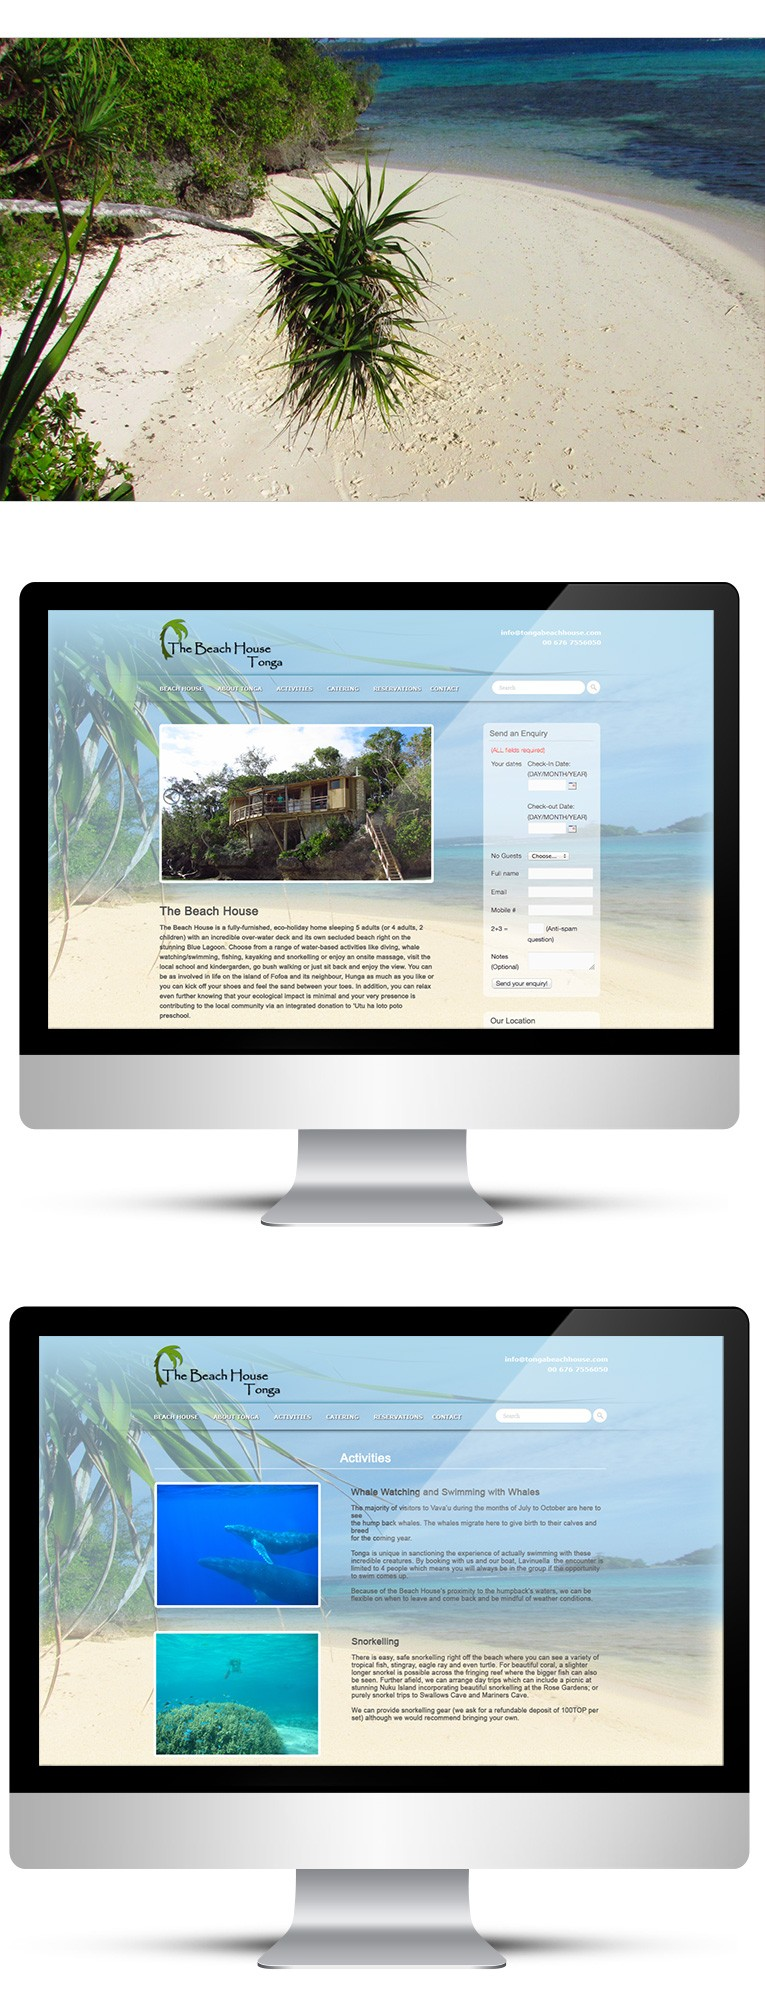 WebDesign for Holiday Homes in Tonga